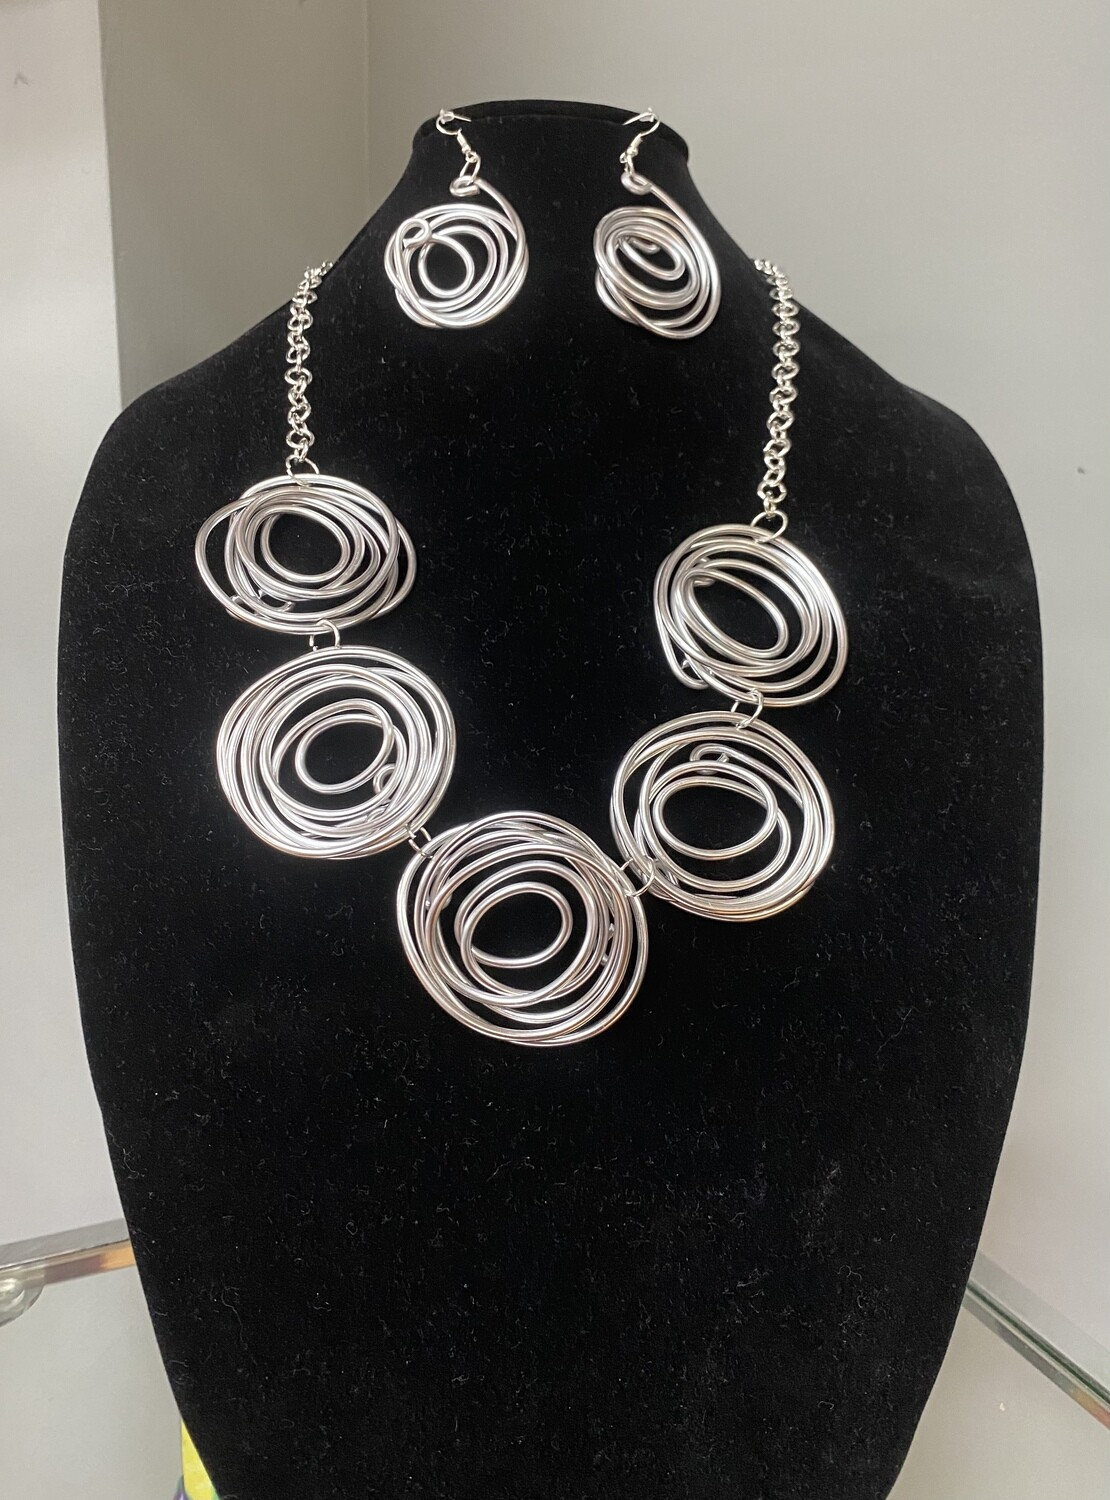 The Spiral Effect Necklace Set